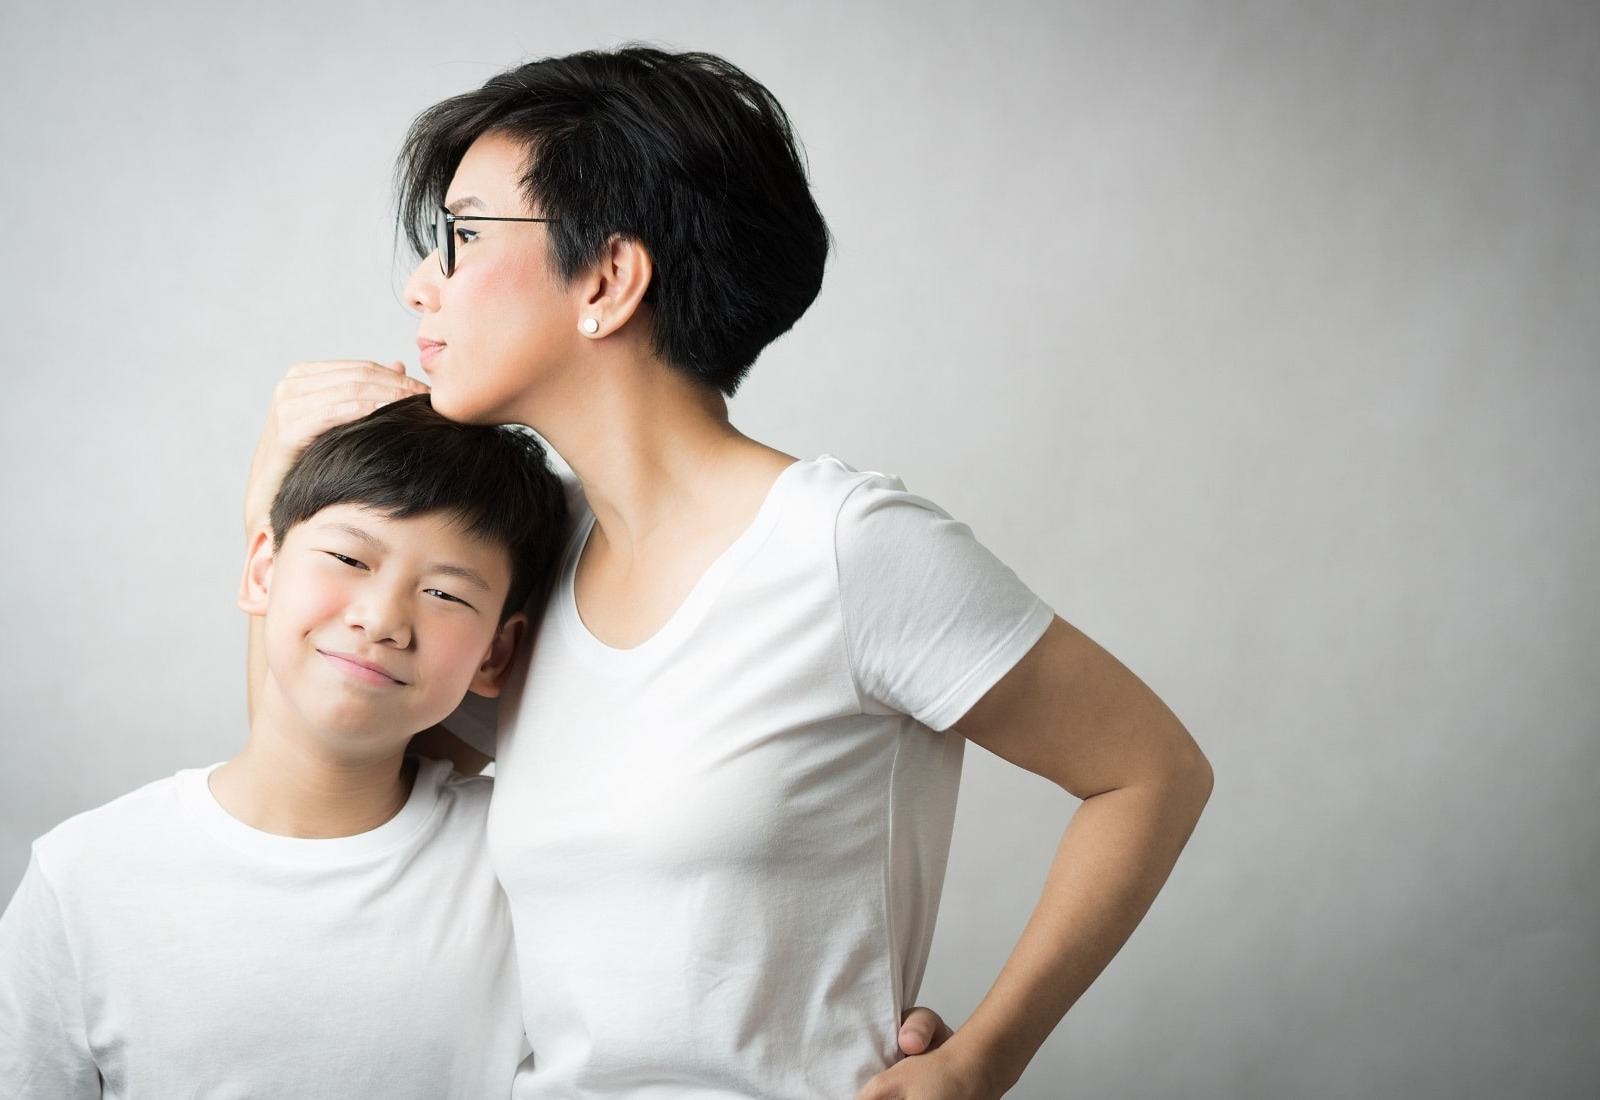 Lying to Your Children, Does It Make Them More Obedient?